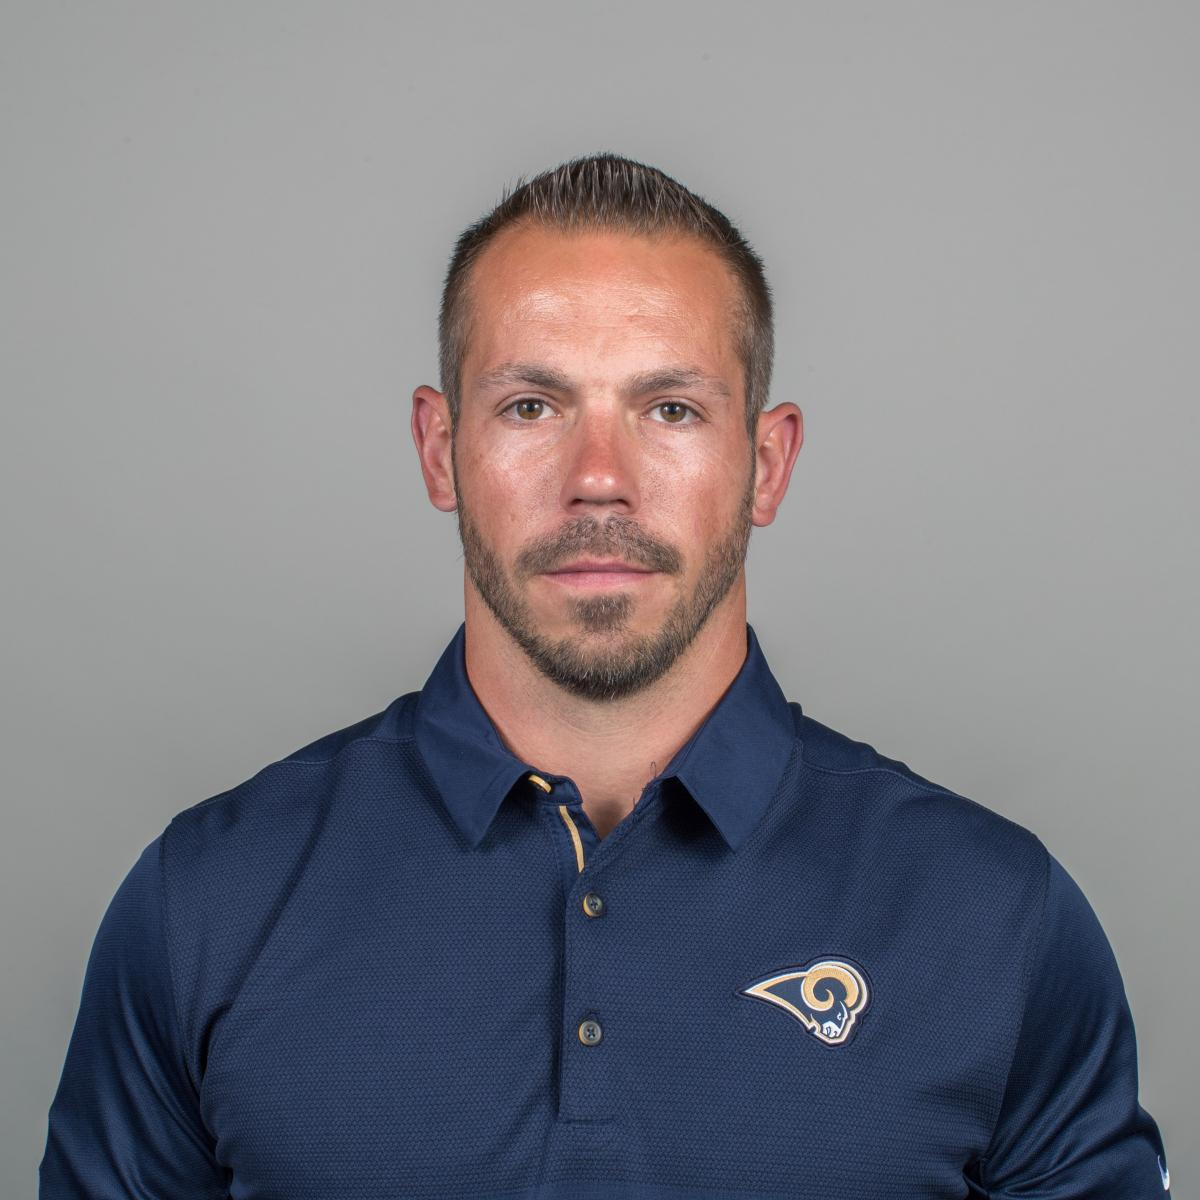 Video Rams Coach Ted Rath Explains Job Of Holding Back Sean Mcvay On Sideline Bleacher Report Latest News Videos And Highlights